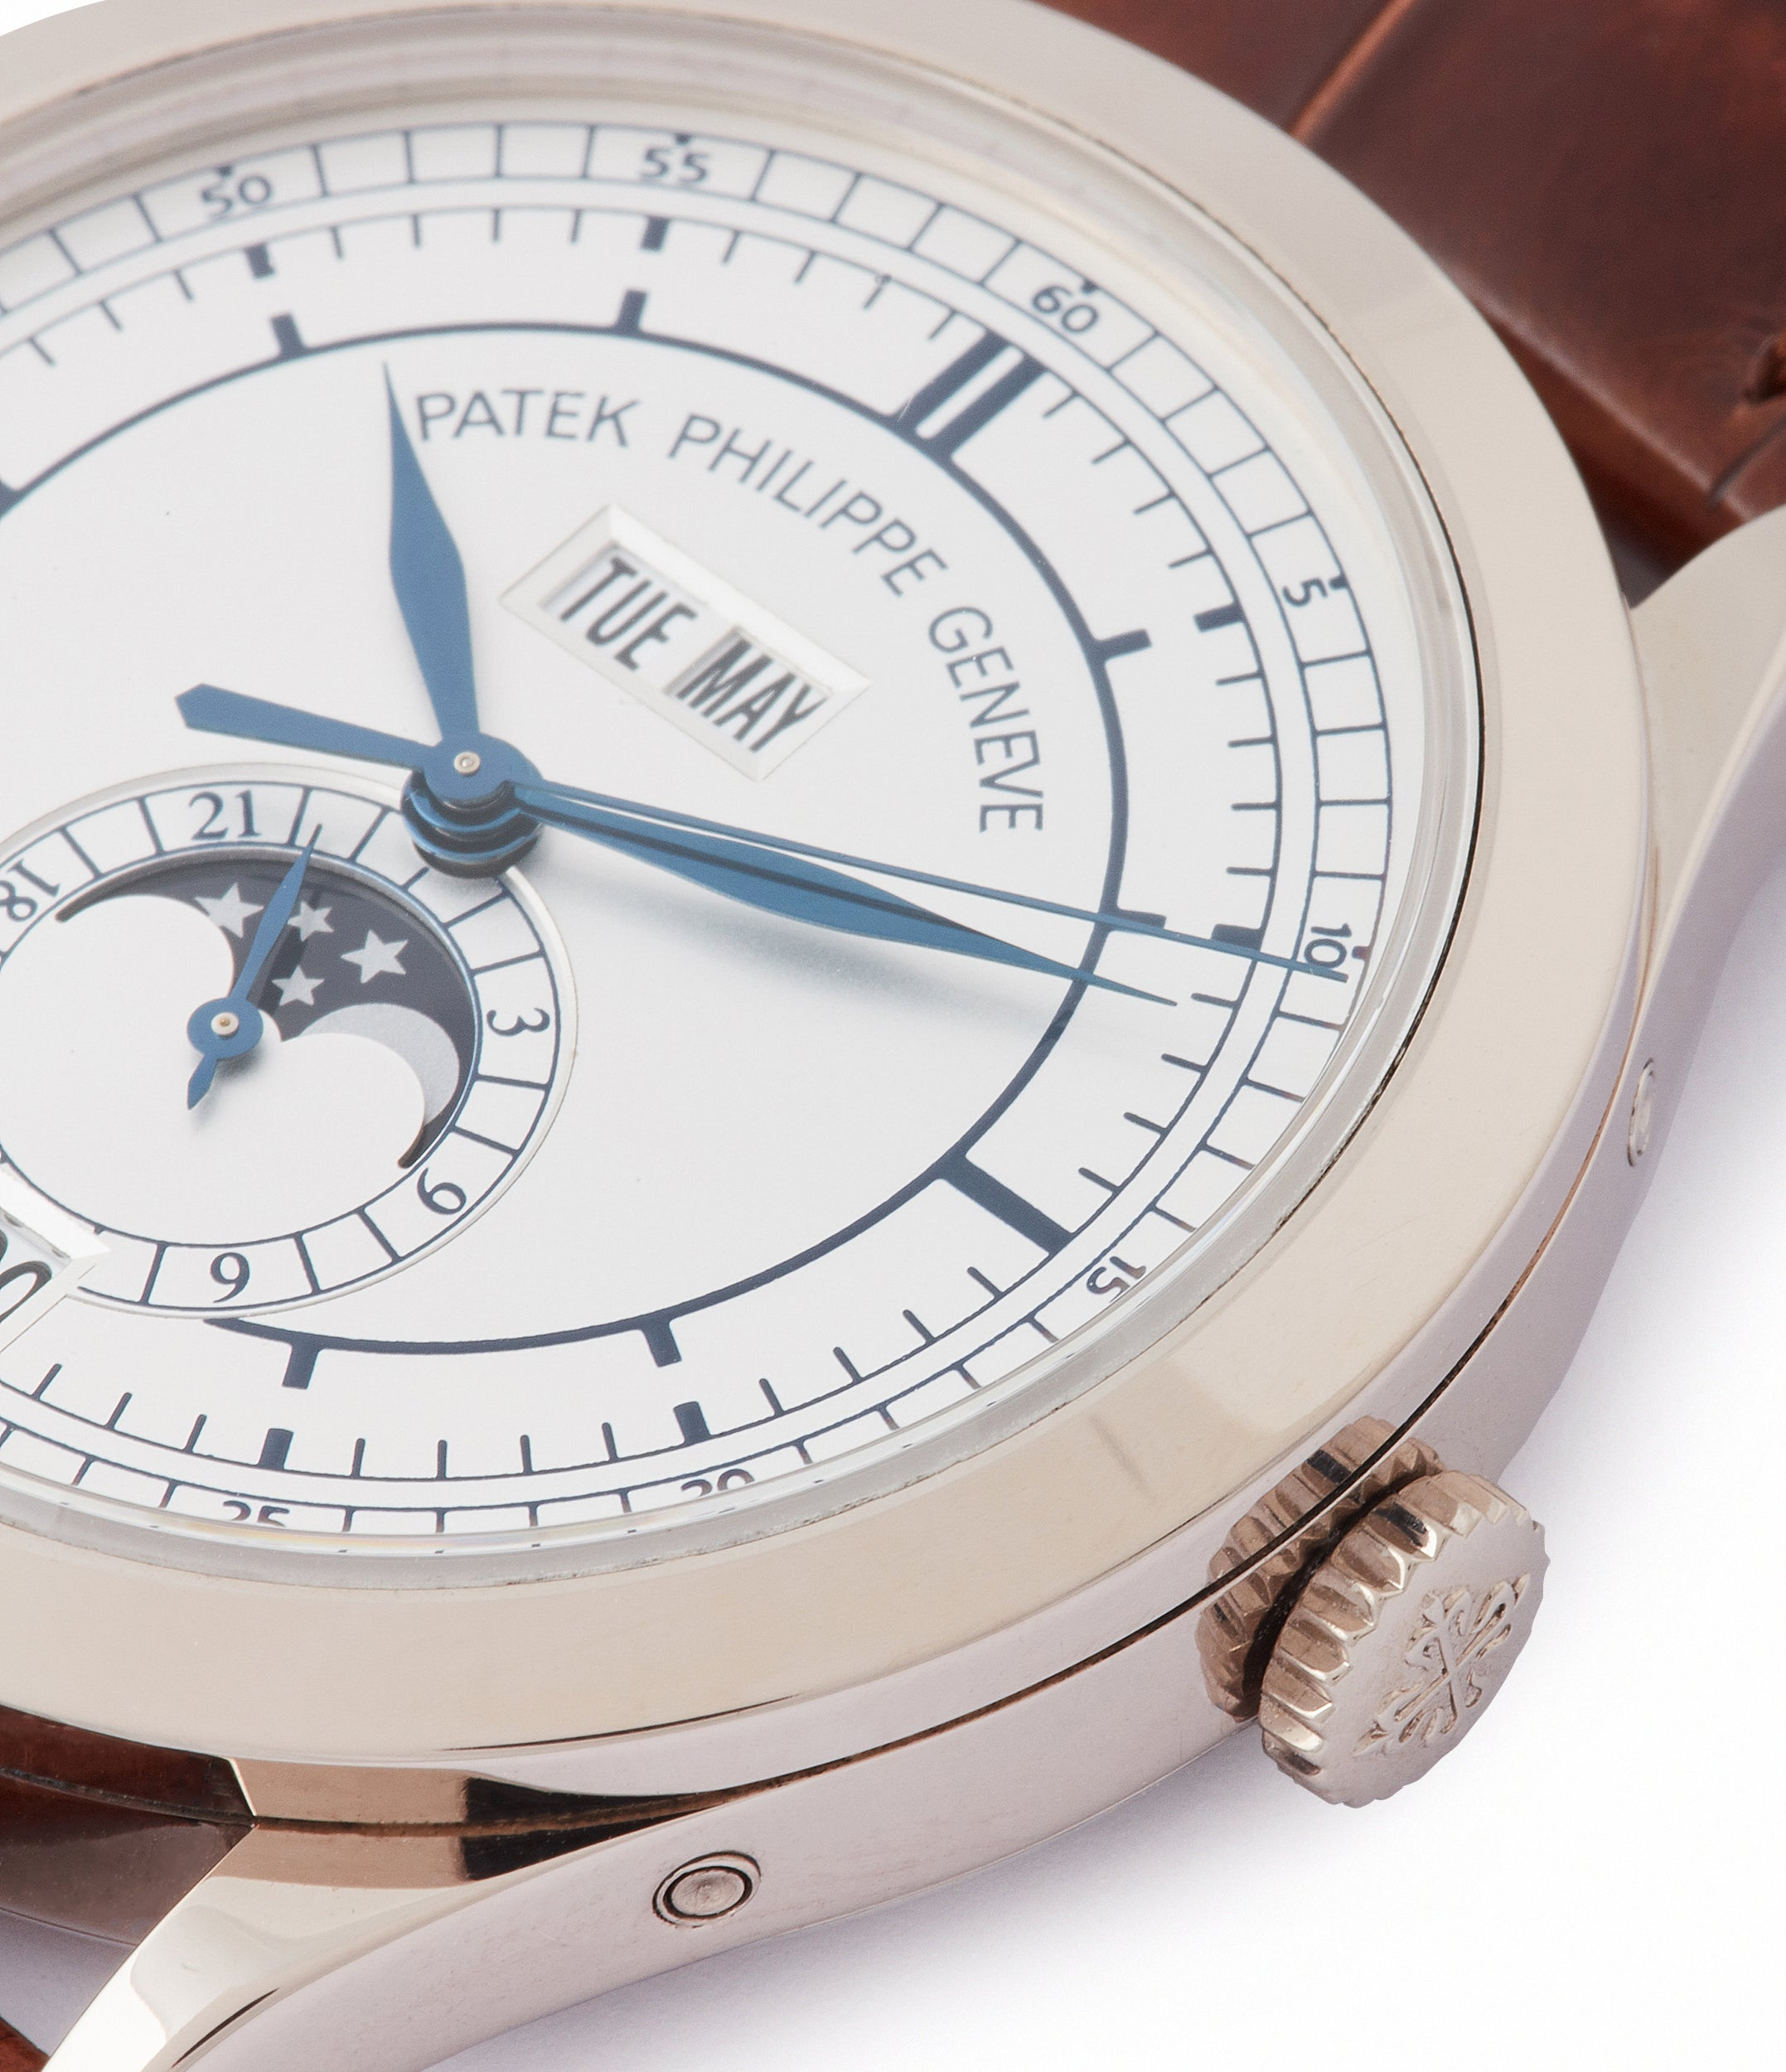 sell Patek Philippe 5396G-001 Annual Calendar pre-owned rare white gold dress watch for sale online at A Collected Man London UK specialist of rare watches